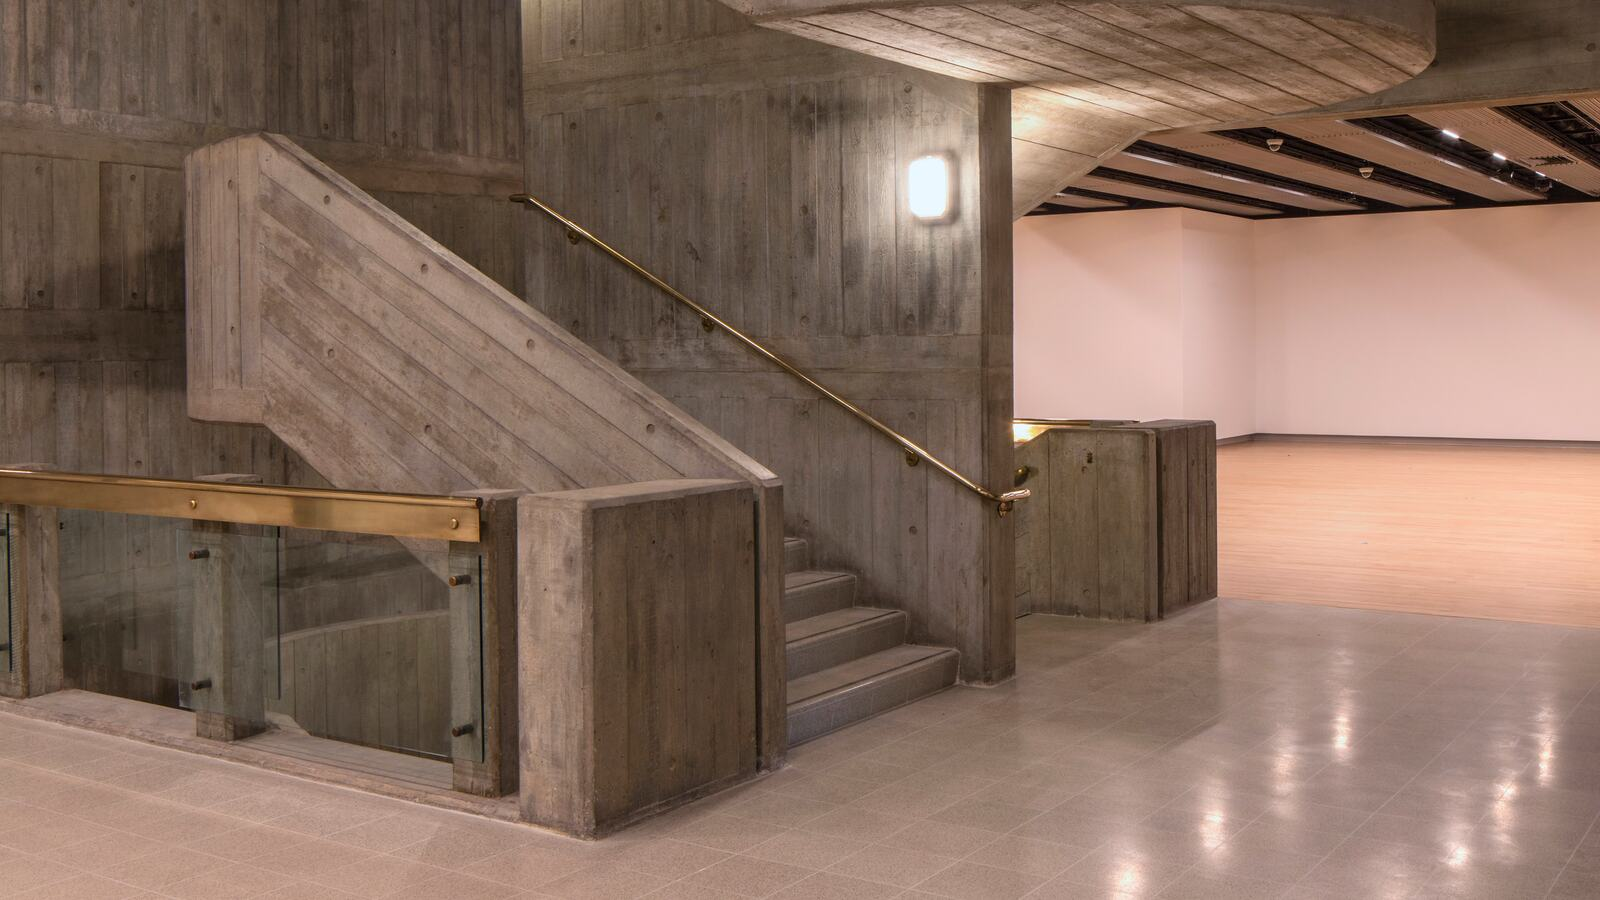 View of the interior stairs at Hayward Gallery